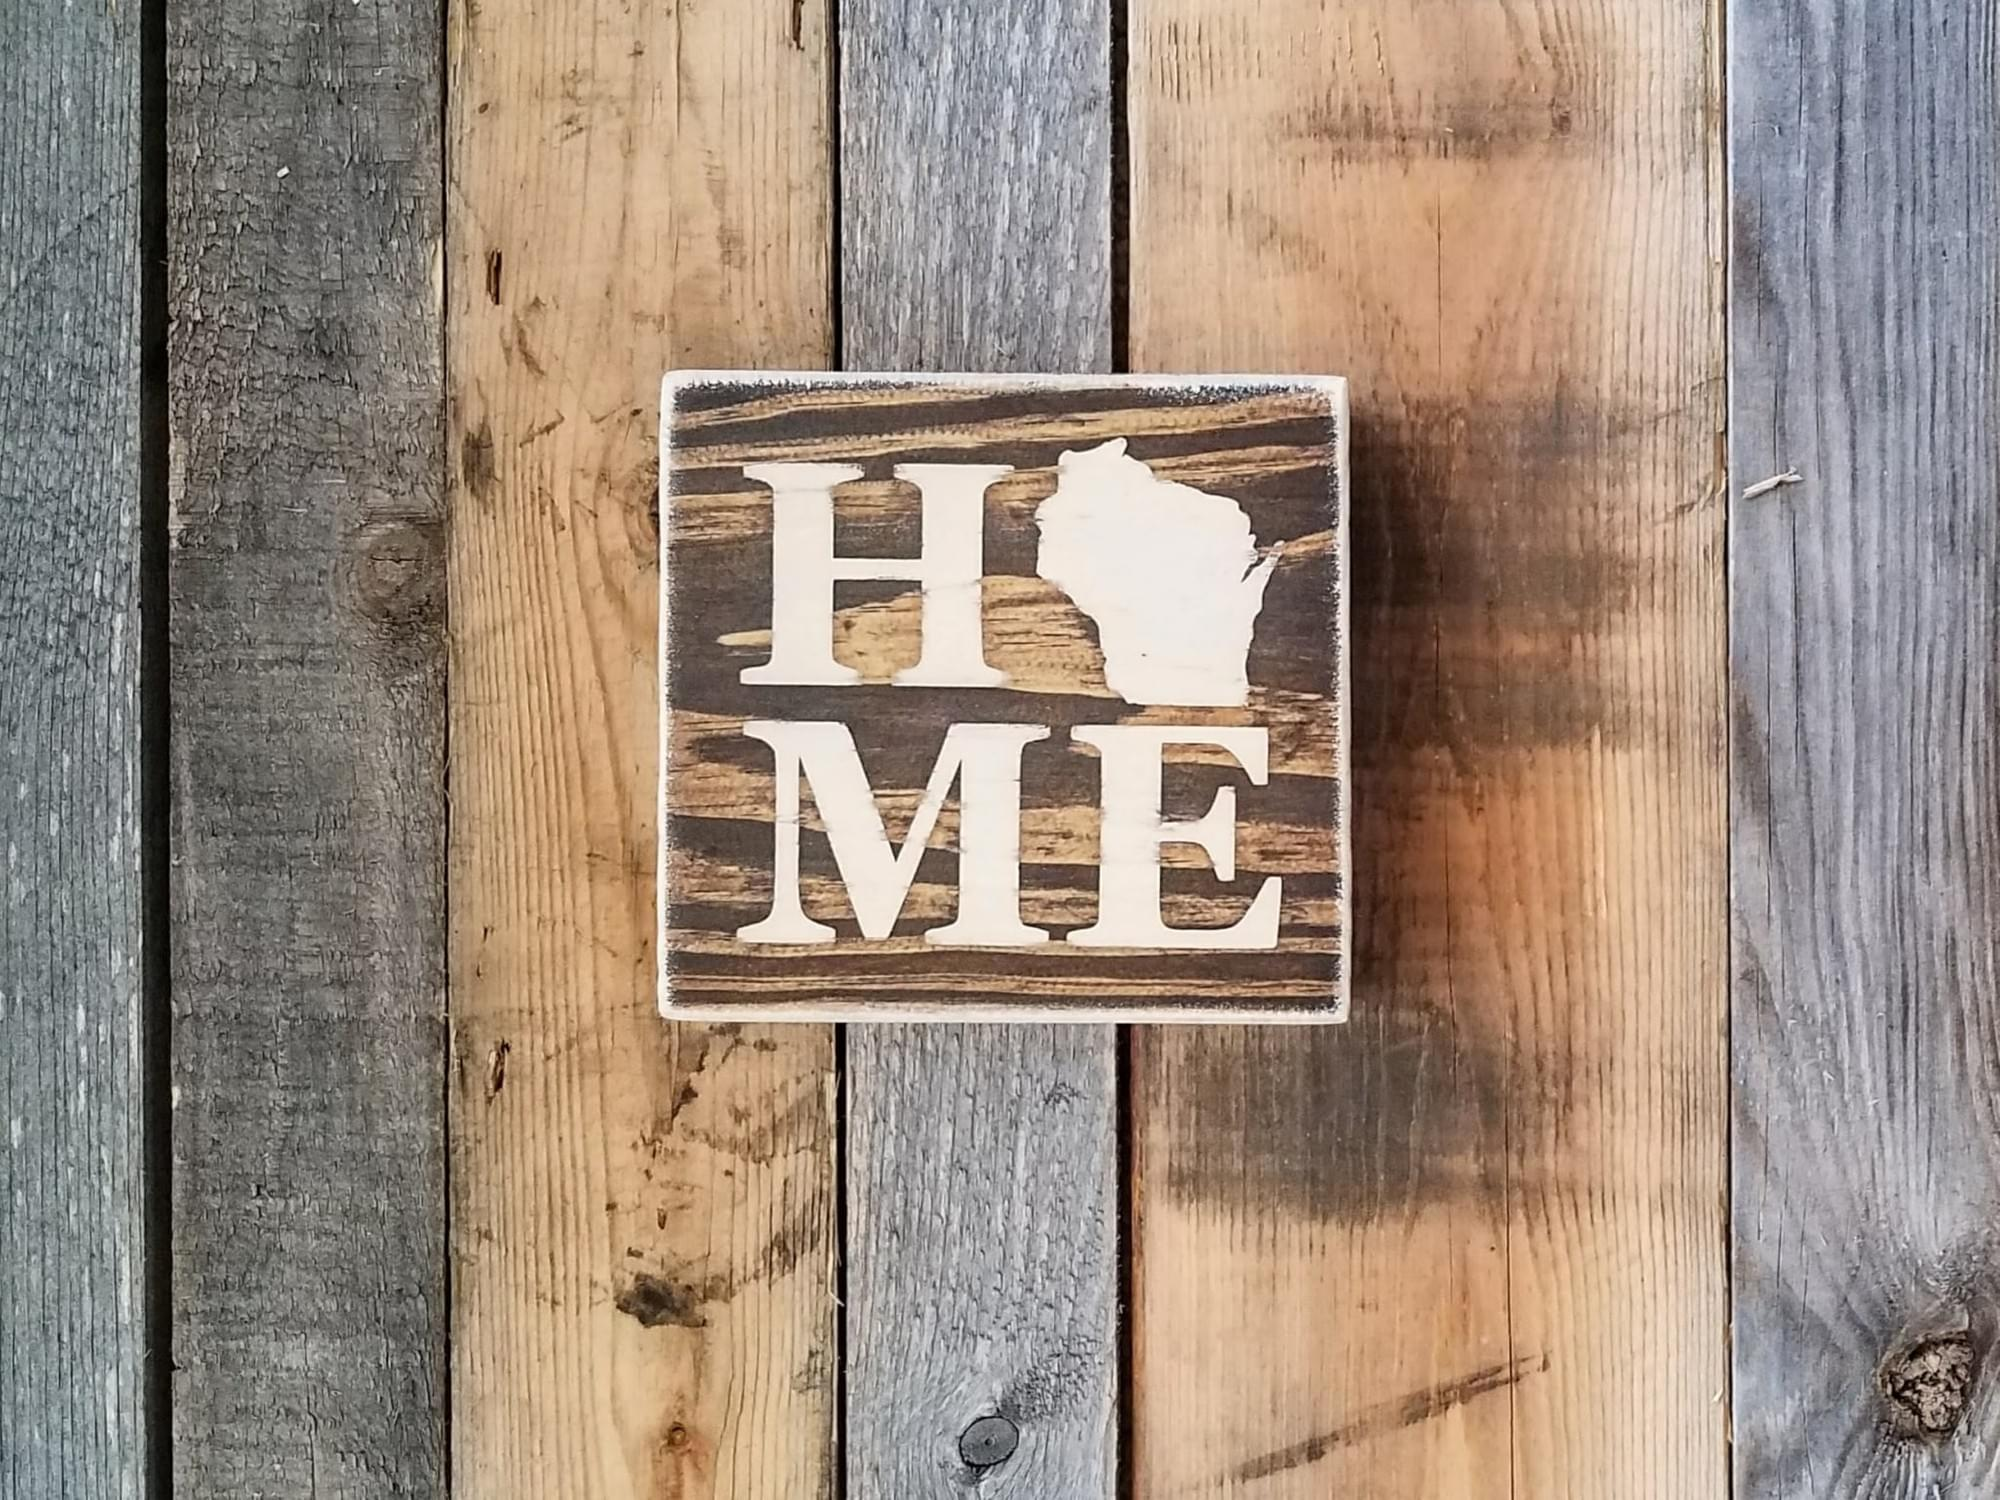 Home State (Wisconsin) Square Wood Shelf-sitter